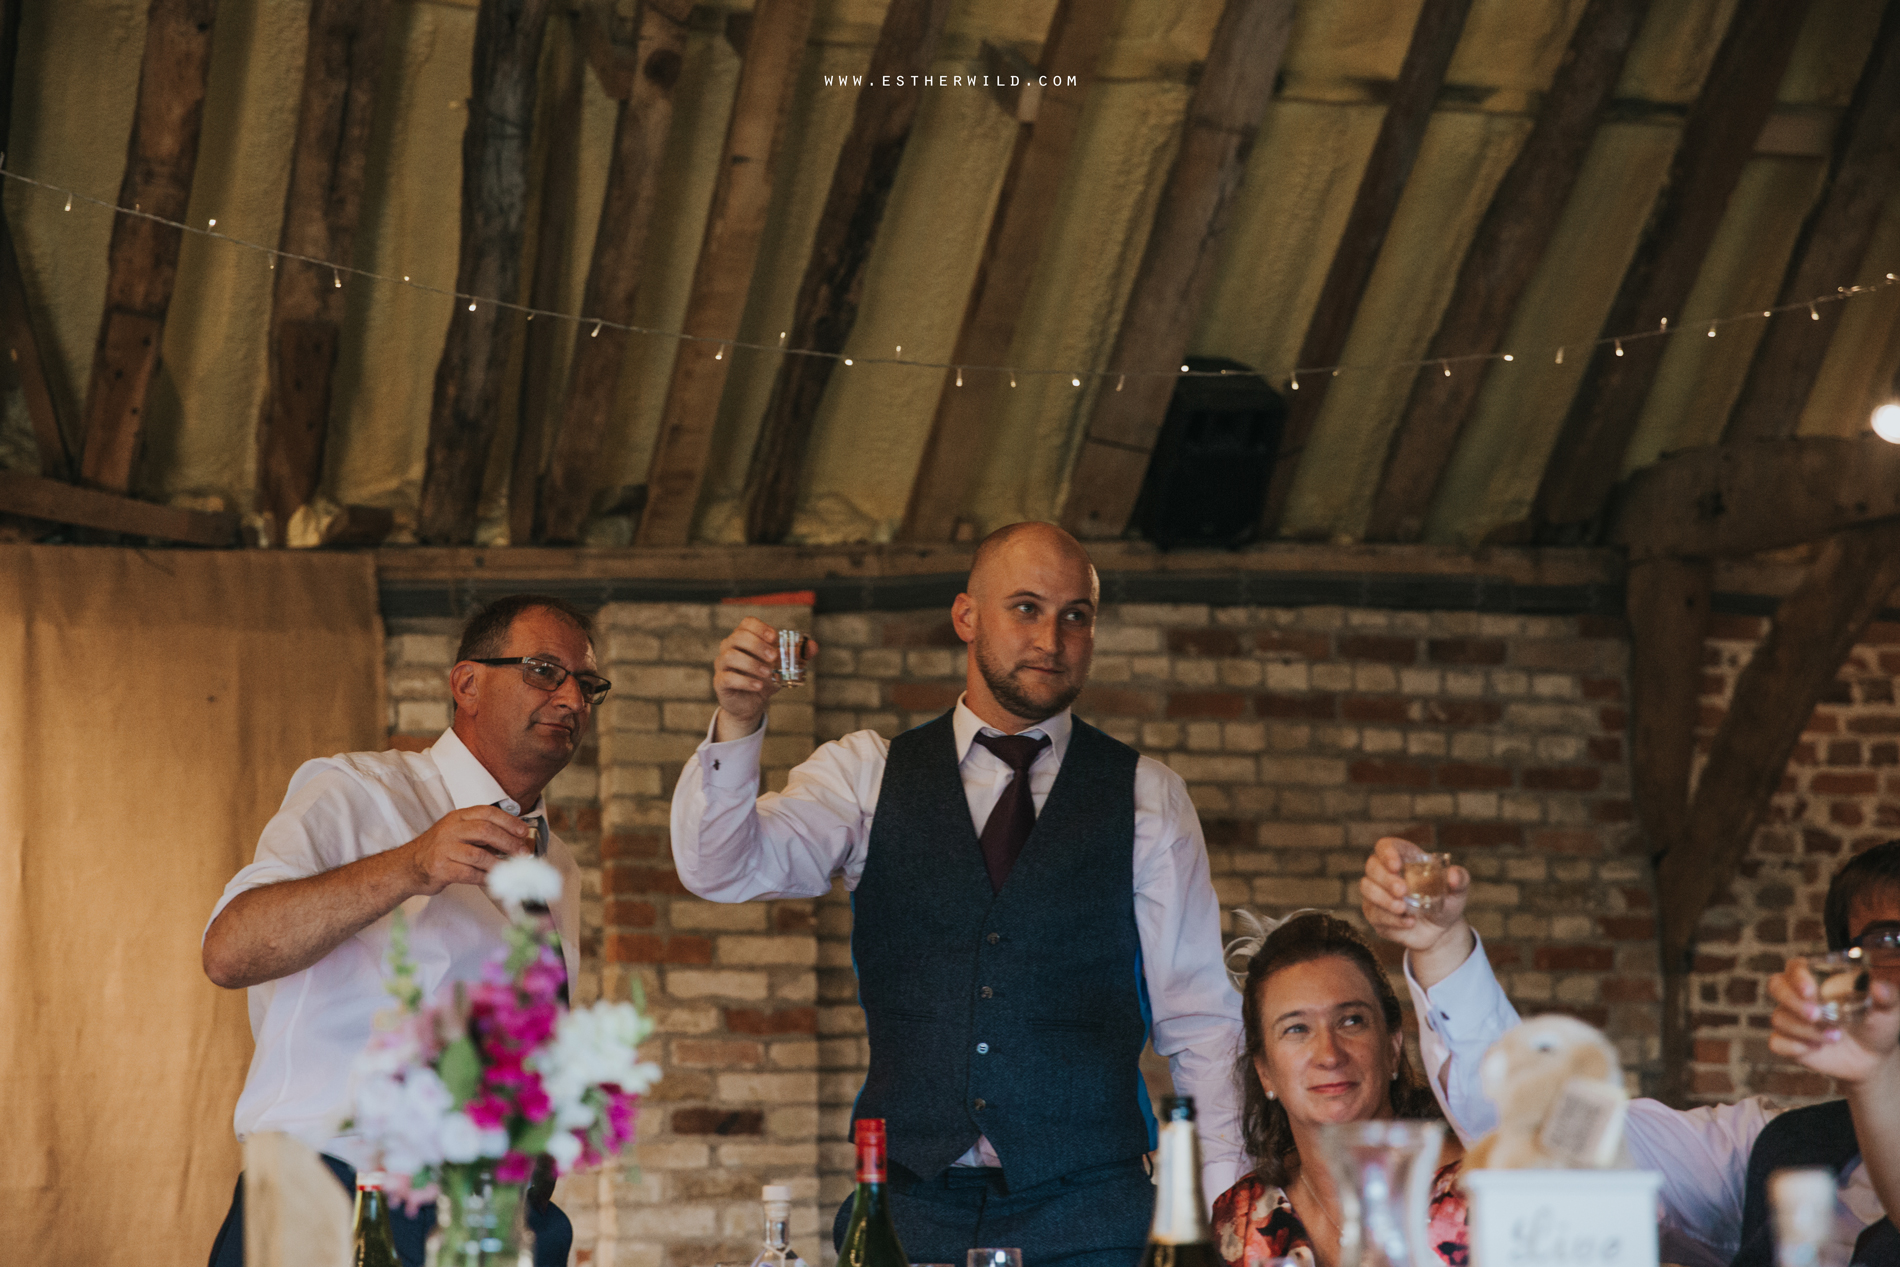 The_Red_Barn_Wedding_Kings_Lynn_Norfolk_IMG_1908.jpg